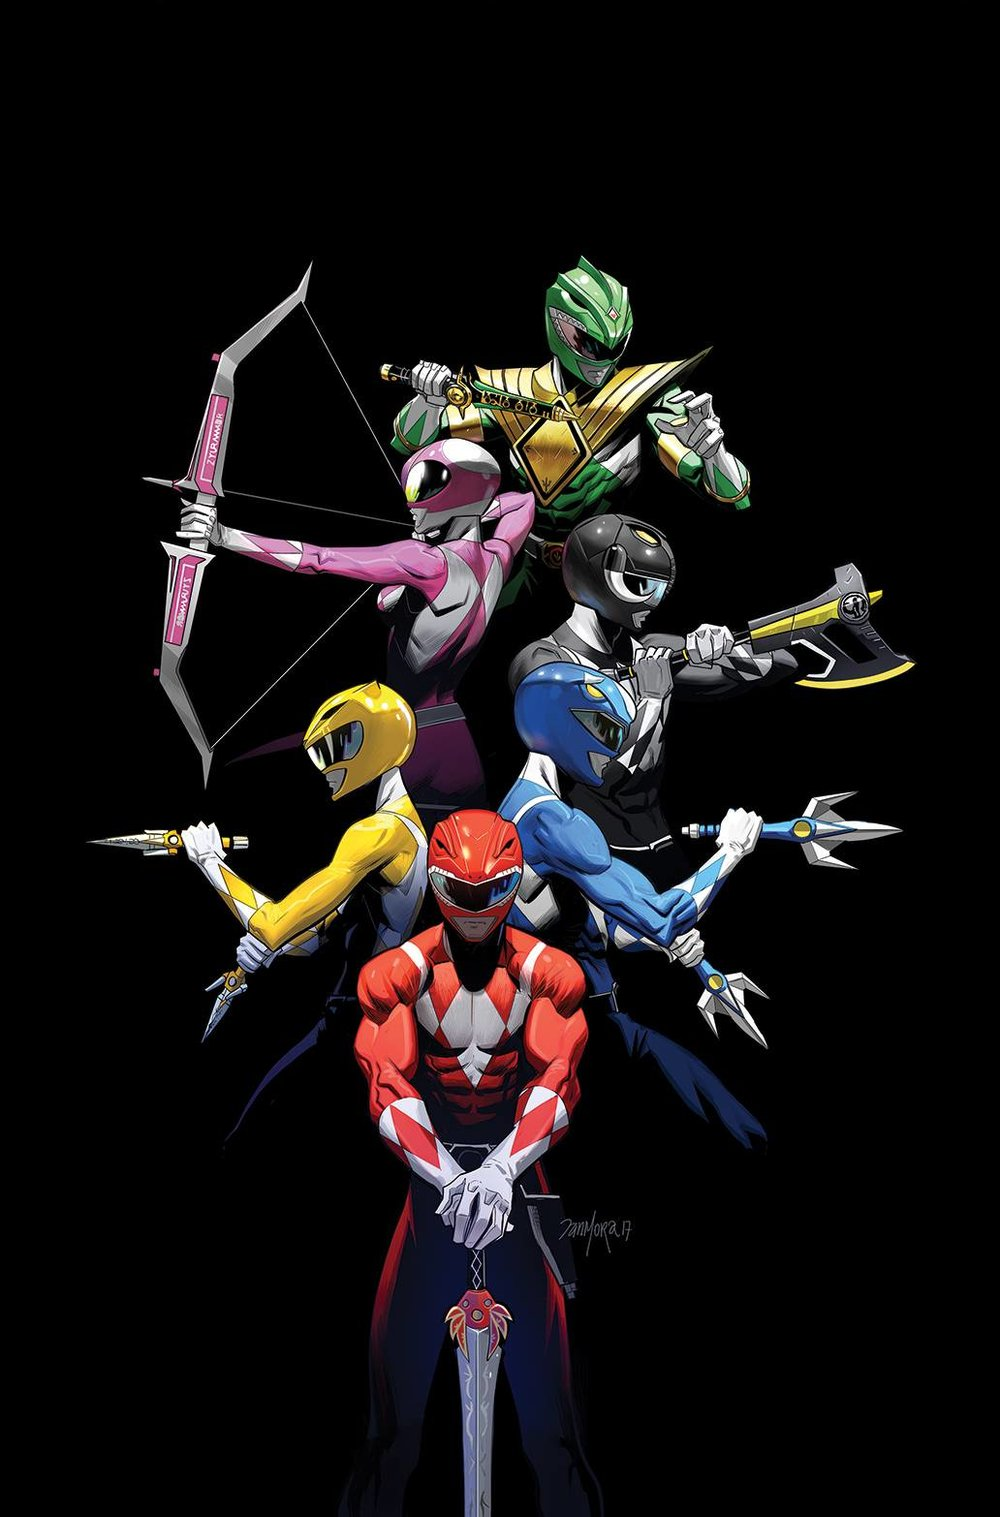 MIGHTY MORPHIN POWER RANGERS 2017 ANNUAL 1 10 COPY INCV MORA VAR.jpg